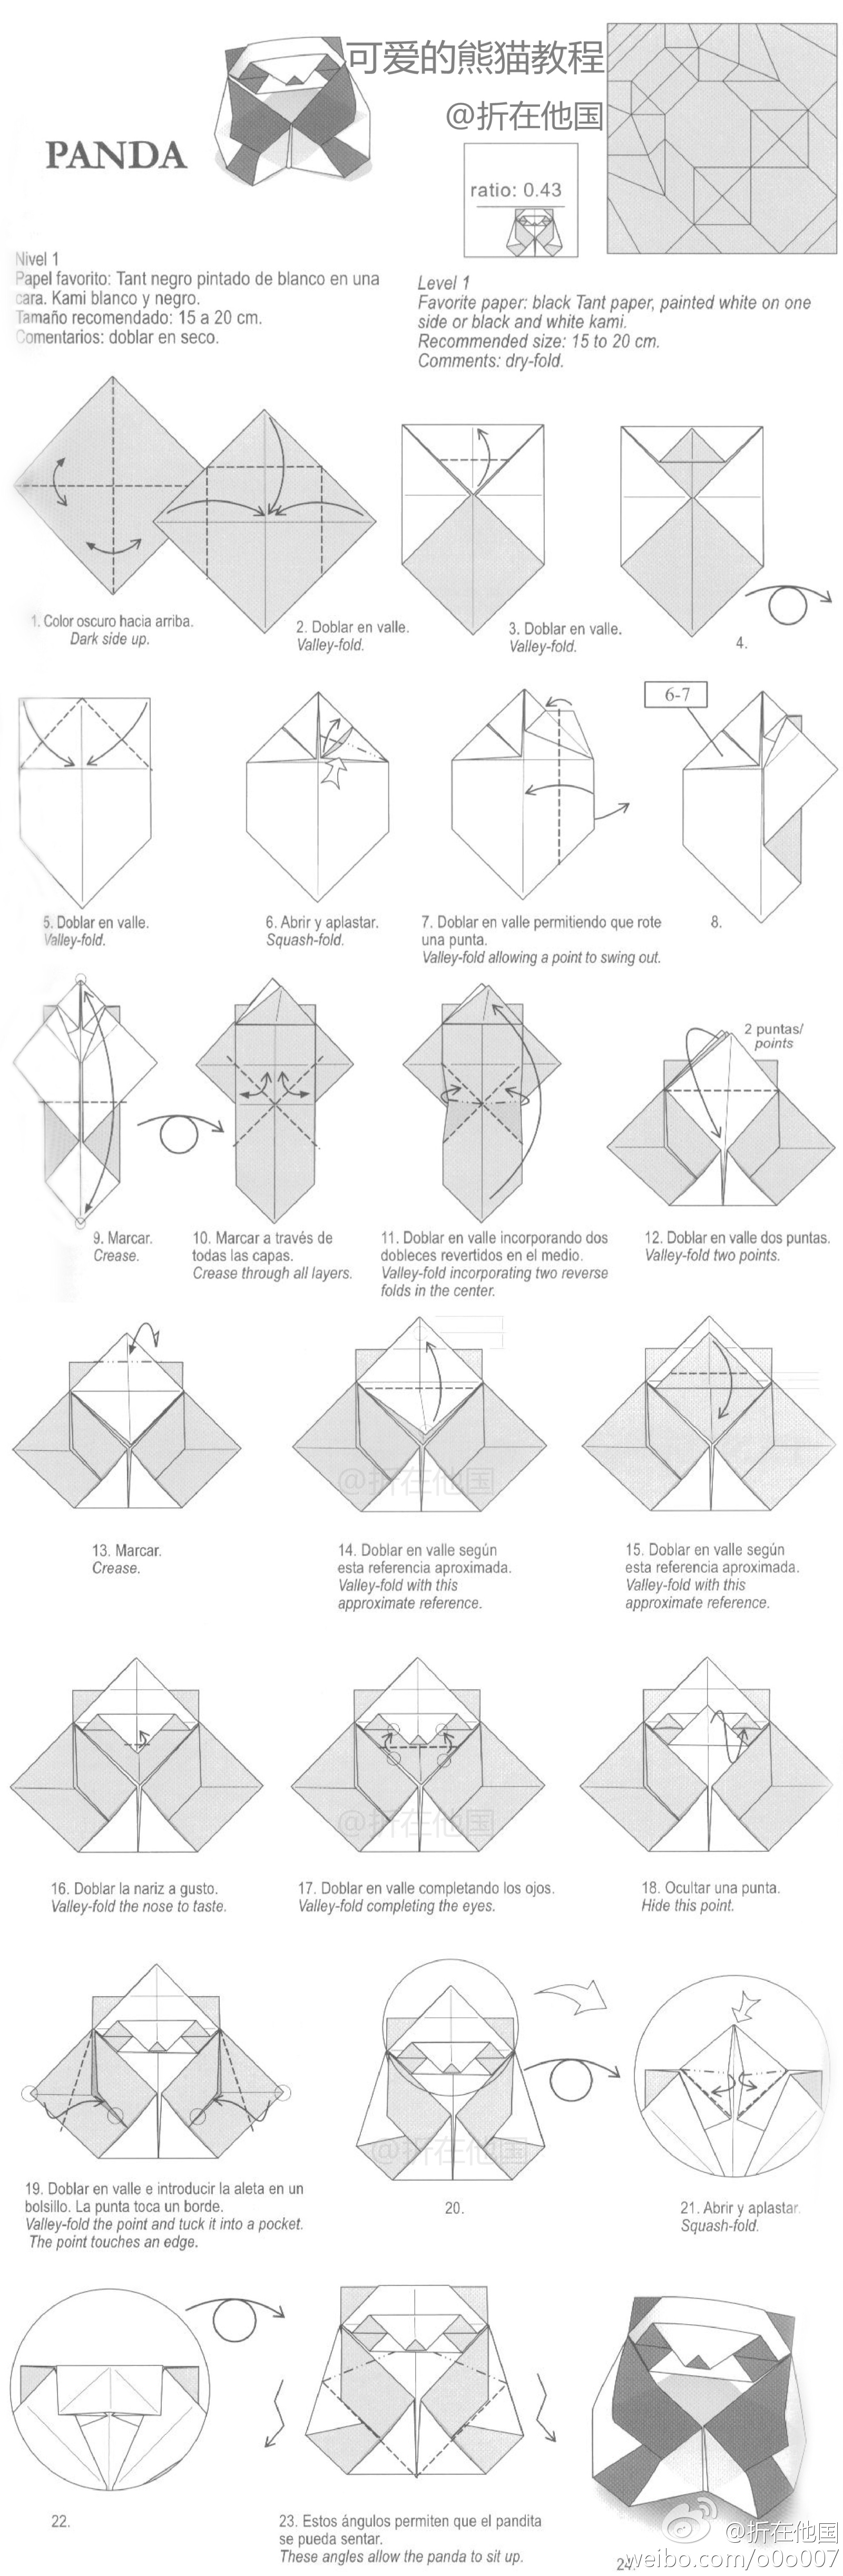 Origami Panda Folding Instructions Instruction